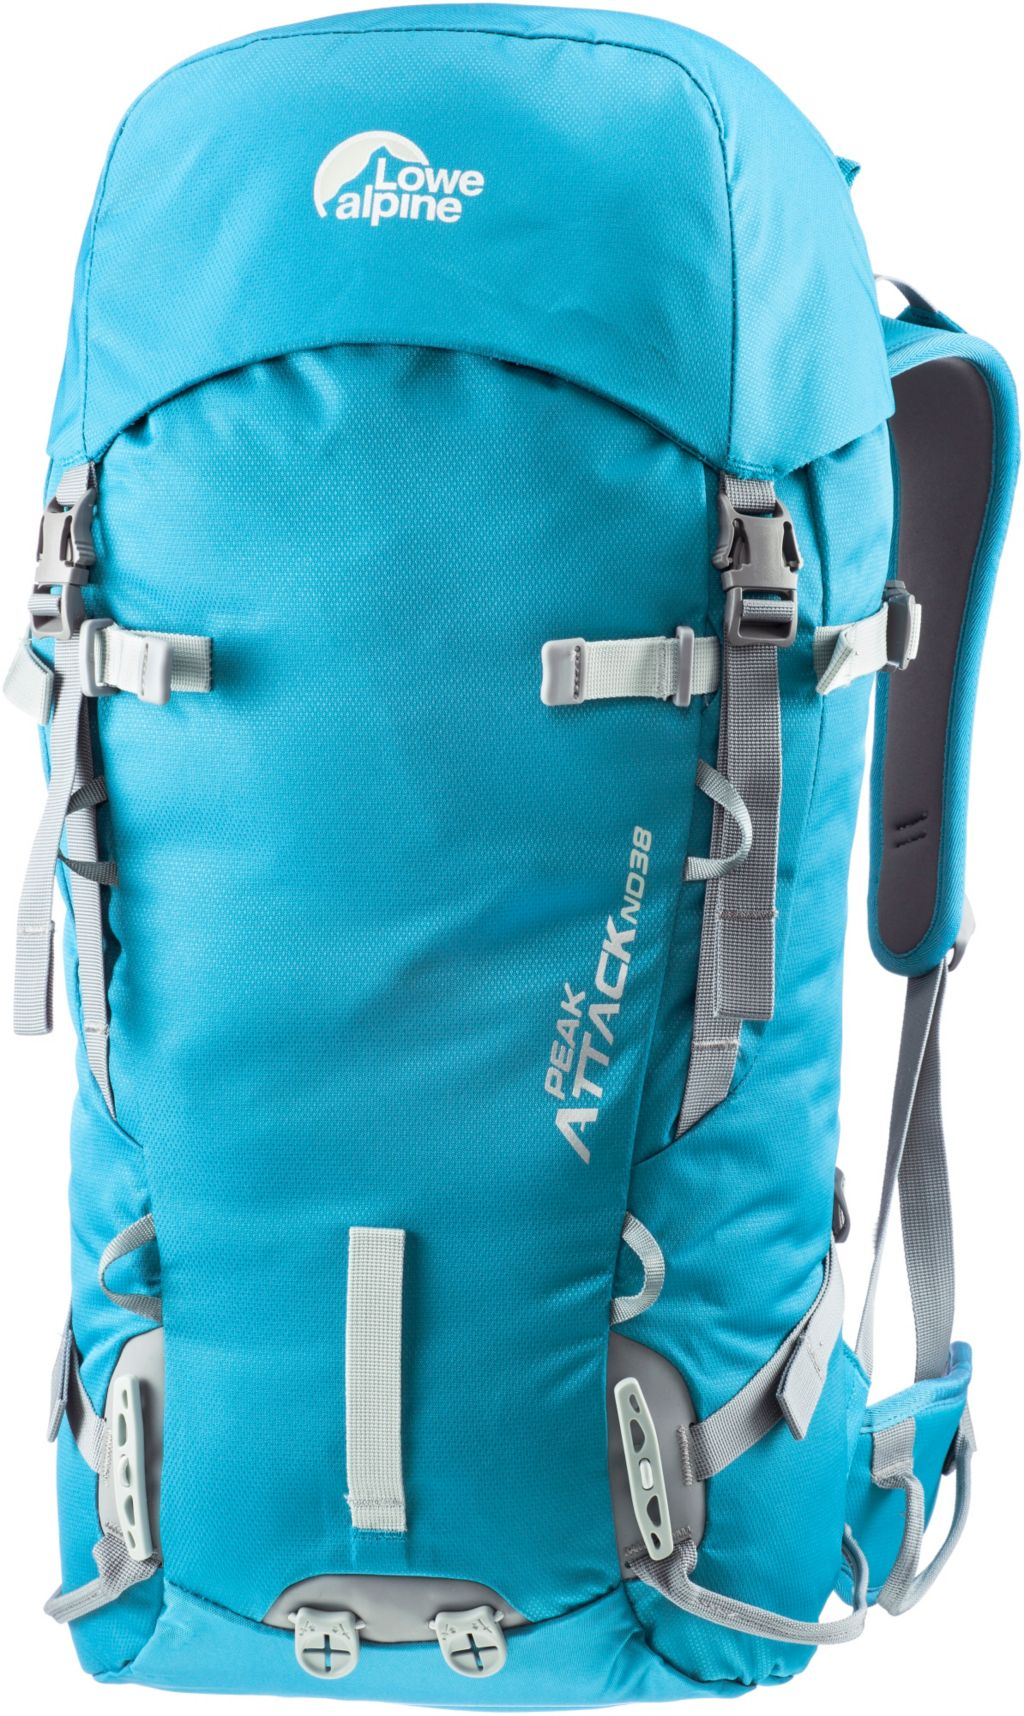 Bild Lowe Alpine Peak Attack ND38 Alpinrucksack Damen